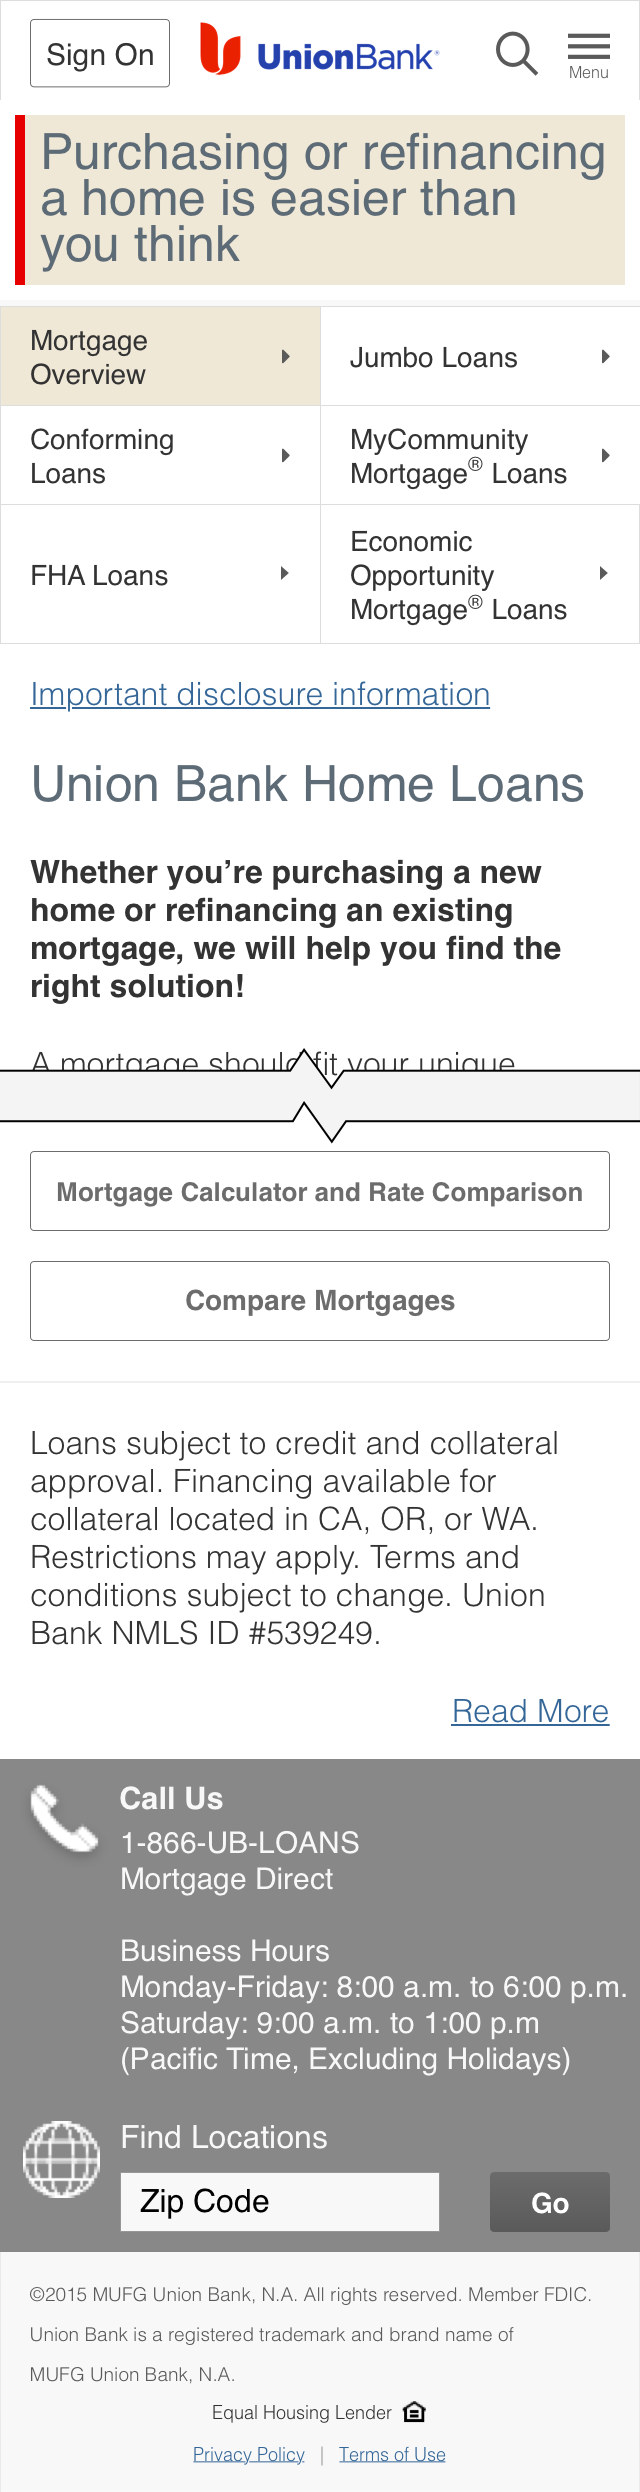 Personal - Mortgage - Alt